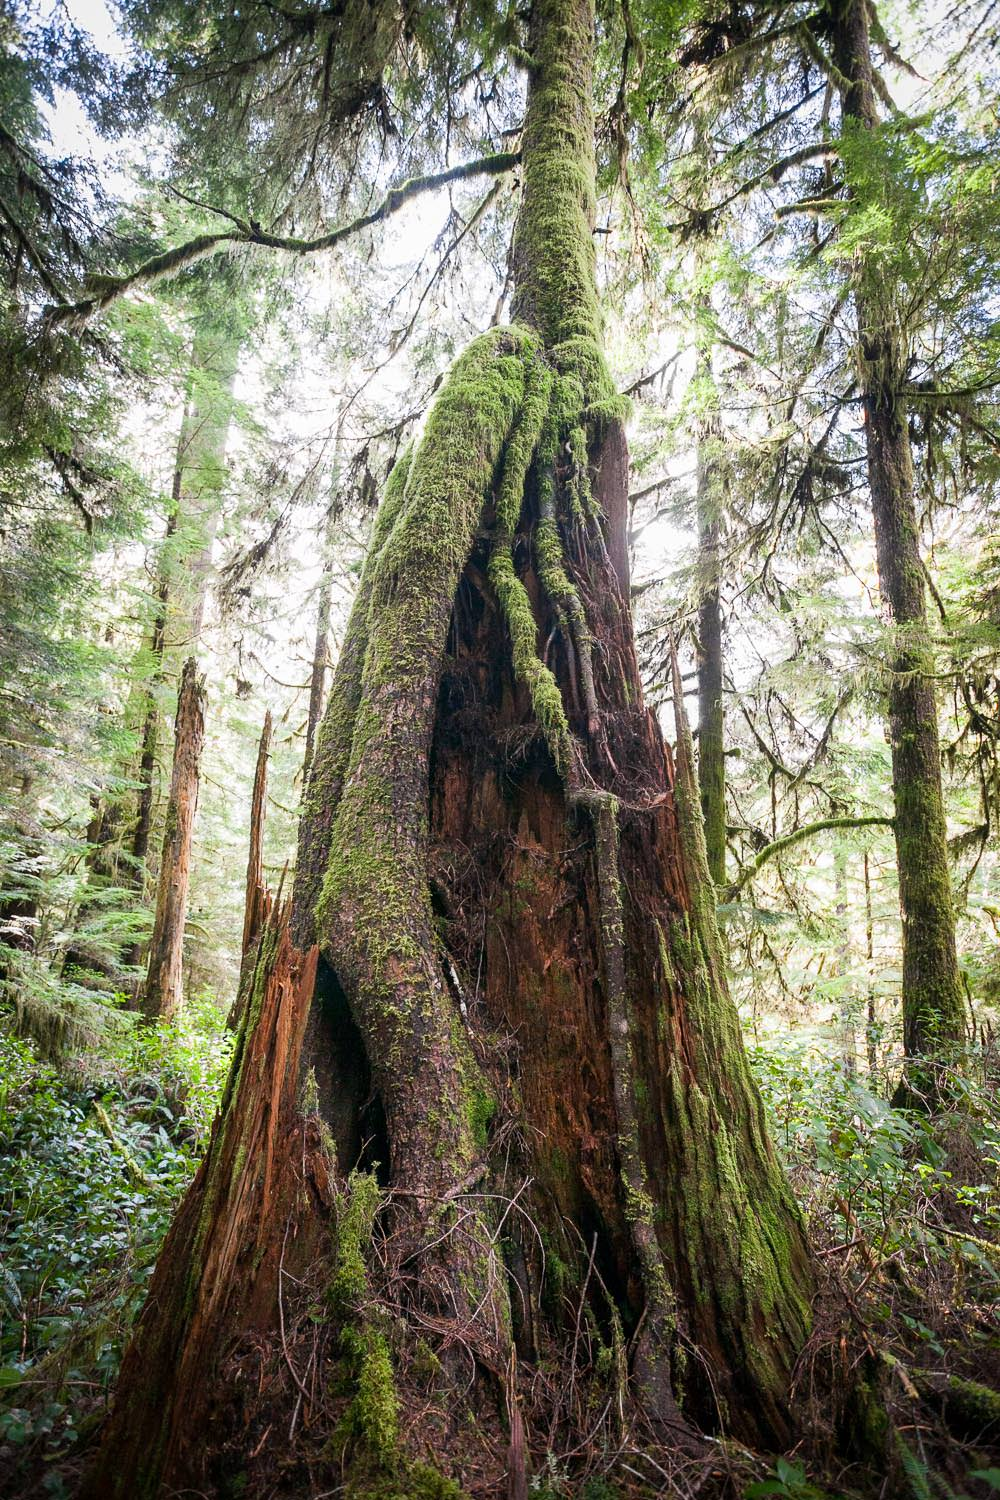 hemlock-growing-old-stump.jpg